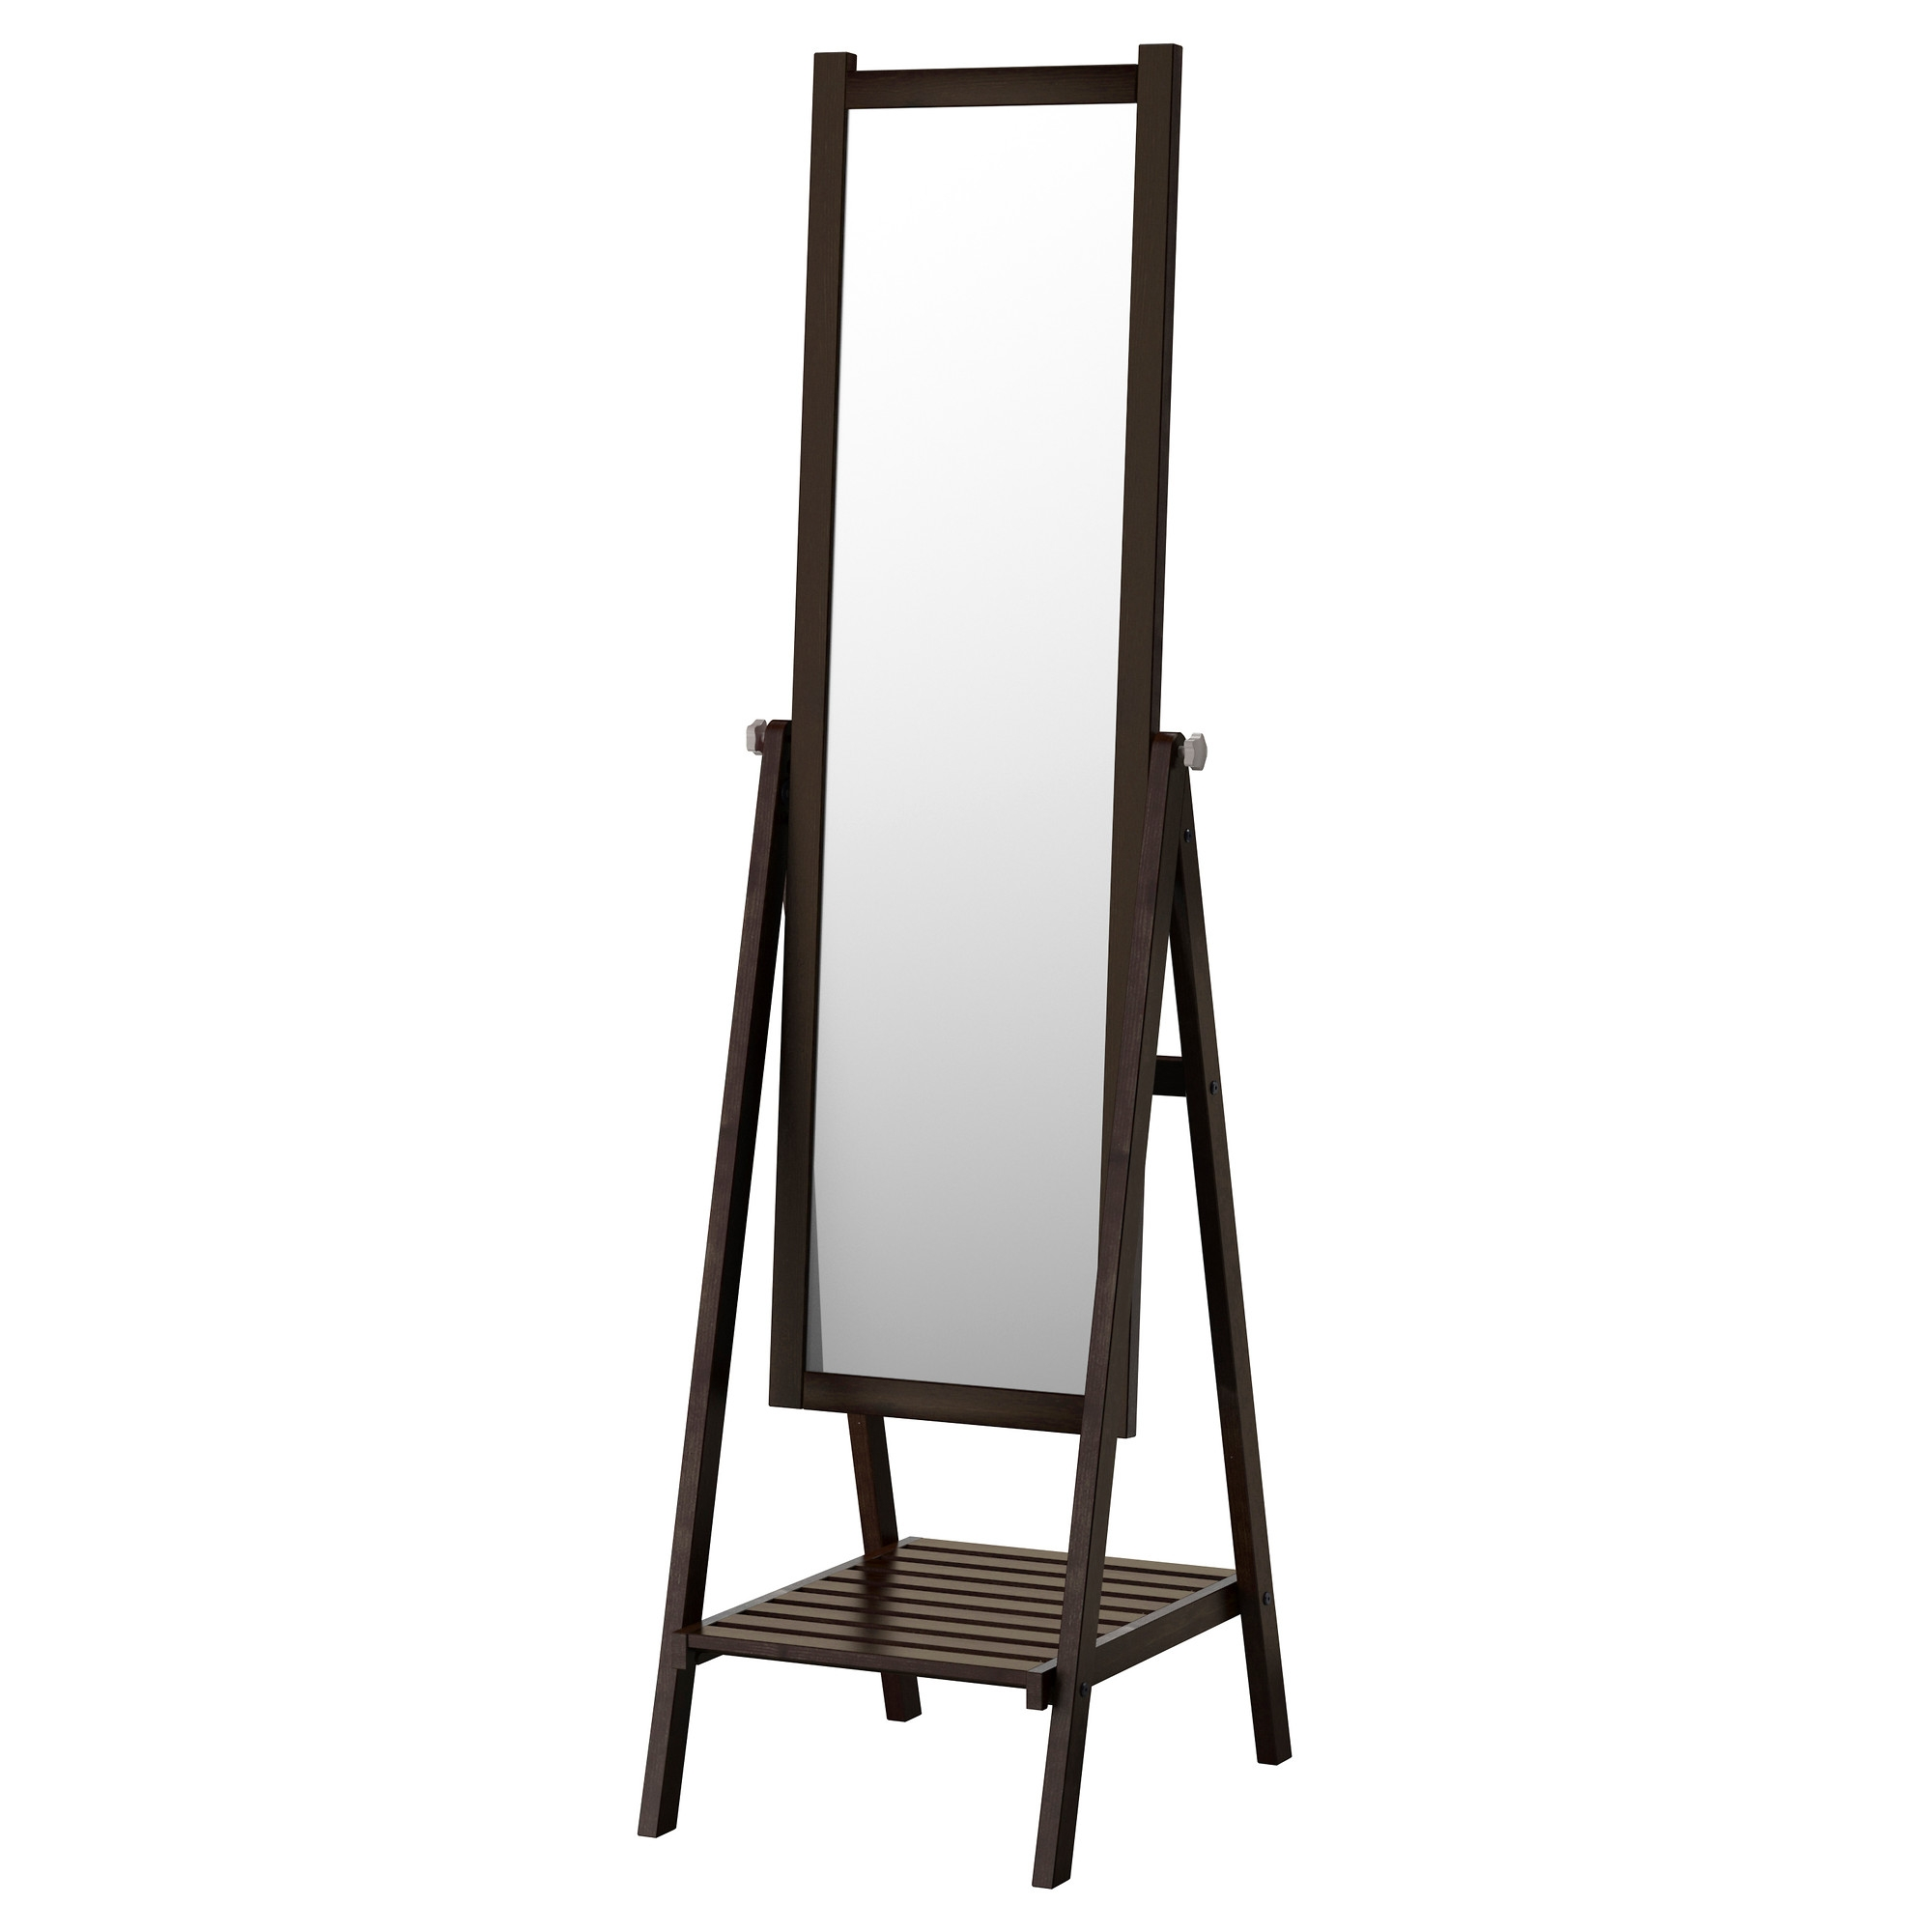 Mirrors Ikea Within Dress Mirrors Free Standing (Image 12 of 15)